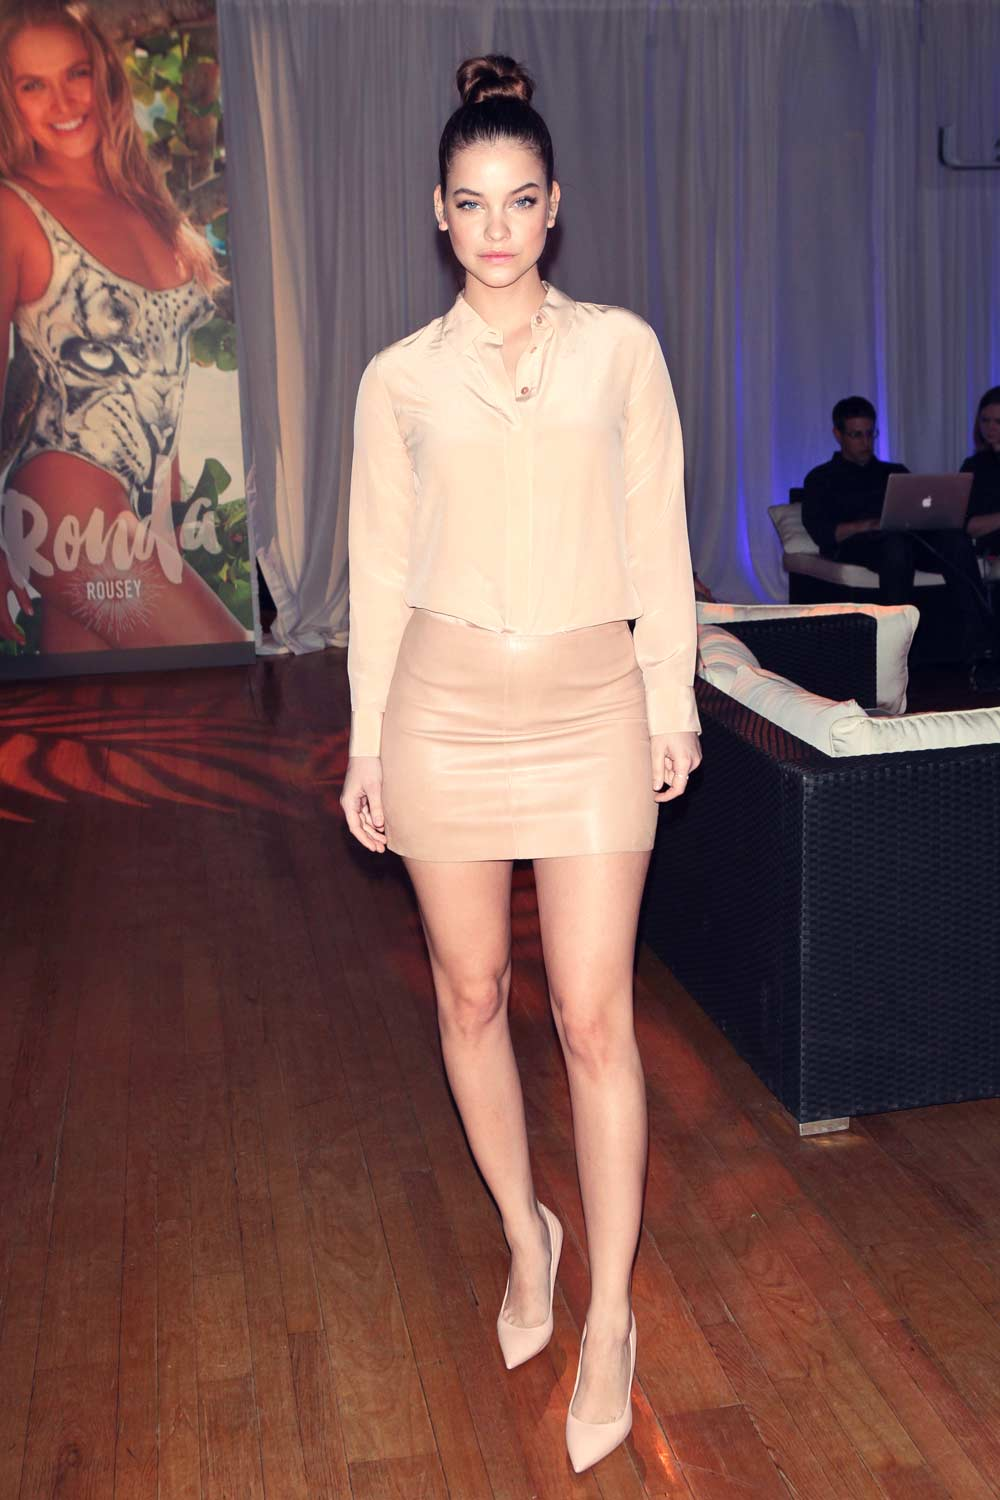 Barbara Palvin attends Sports Illustrated Swimsuit 2016 press event